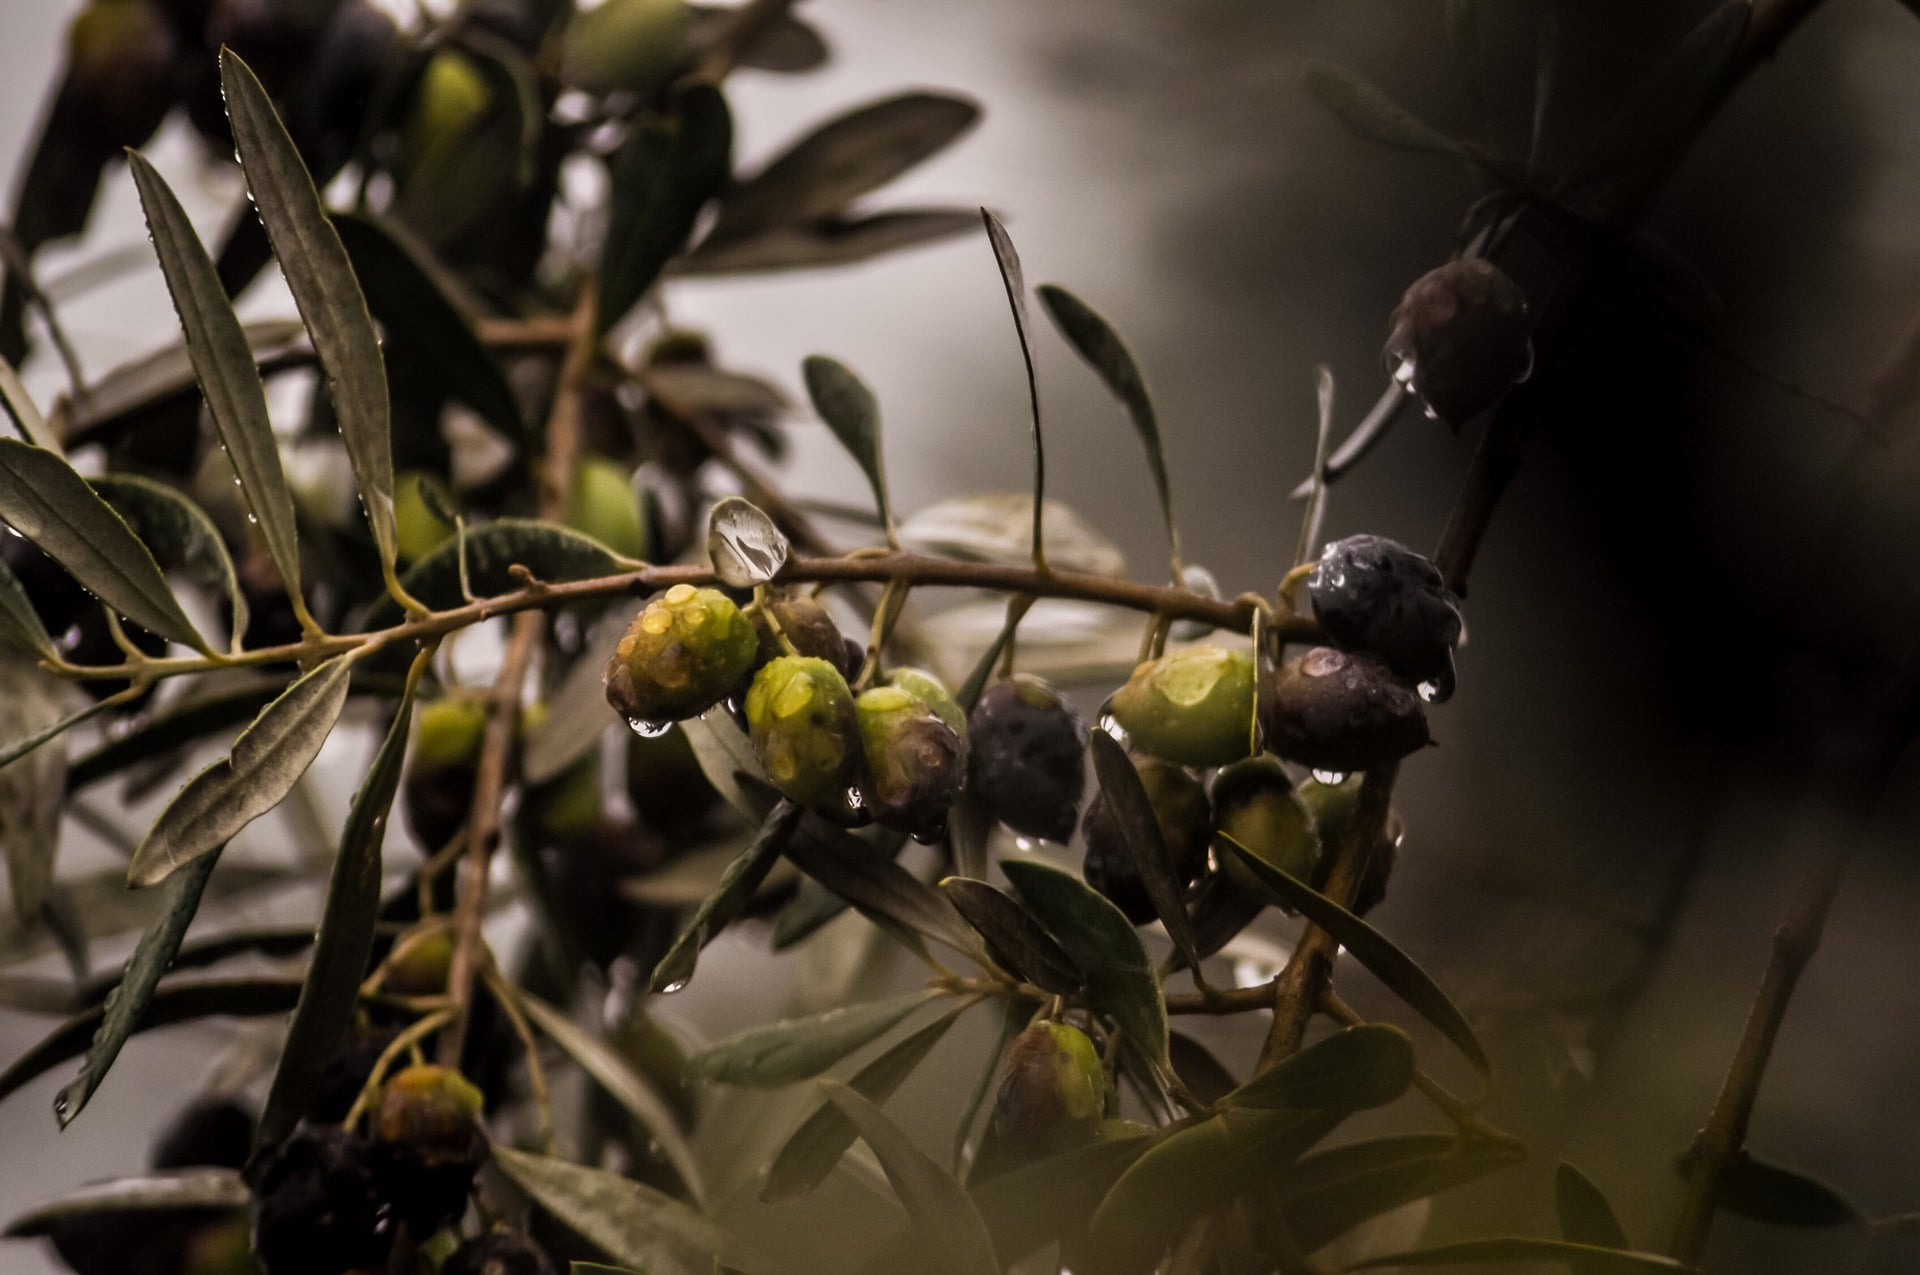 Olive oil nutrients and health benefits